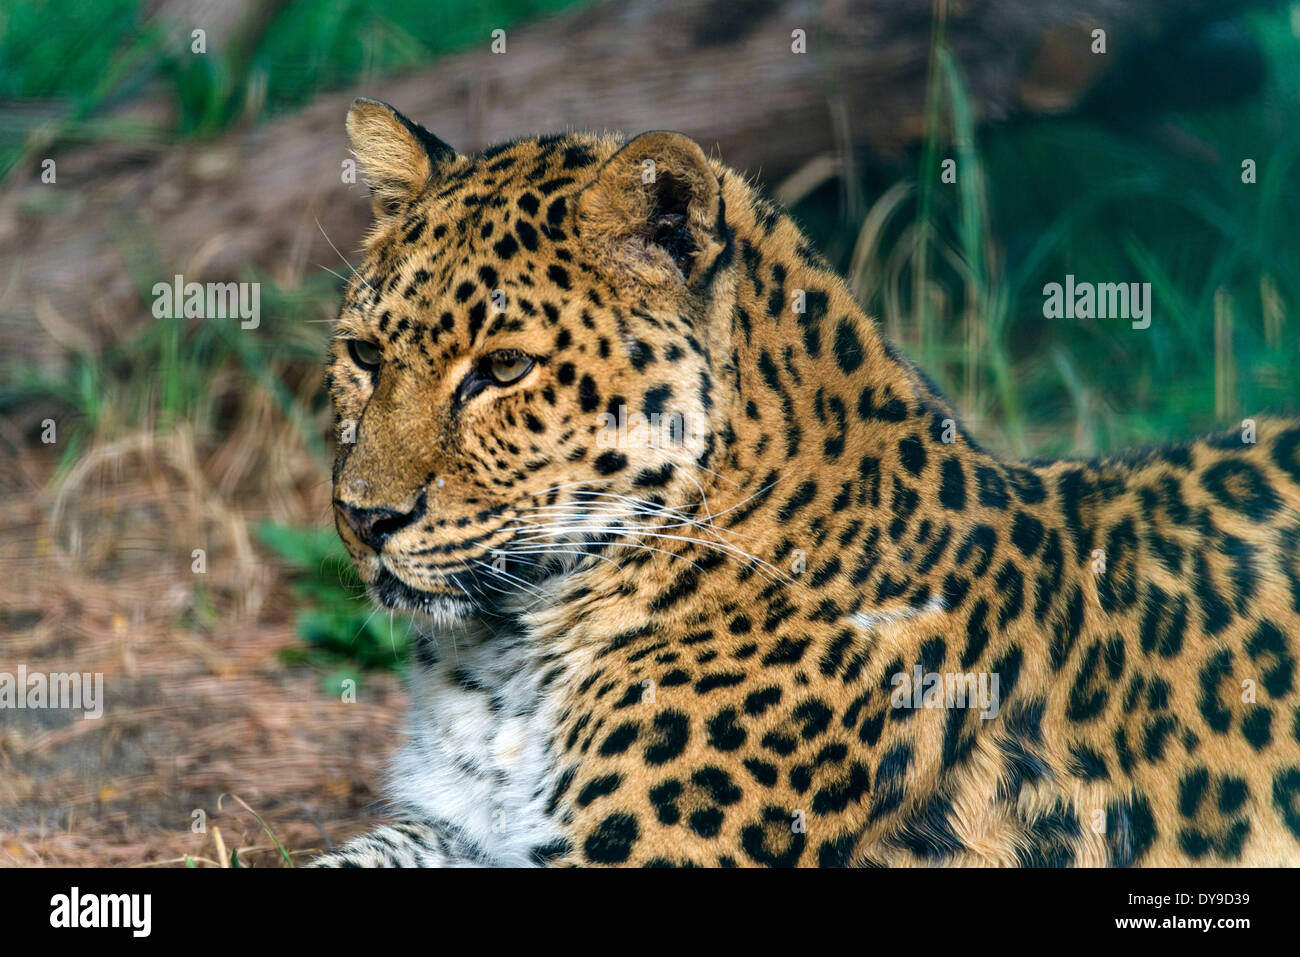 Amur Leopard, panthera pardus orientalis, leopard, animal, portrait, USA, United States, America, Stock Photo